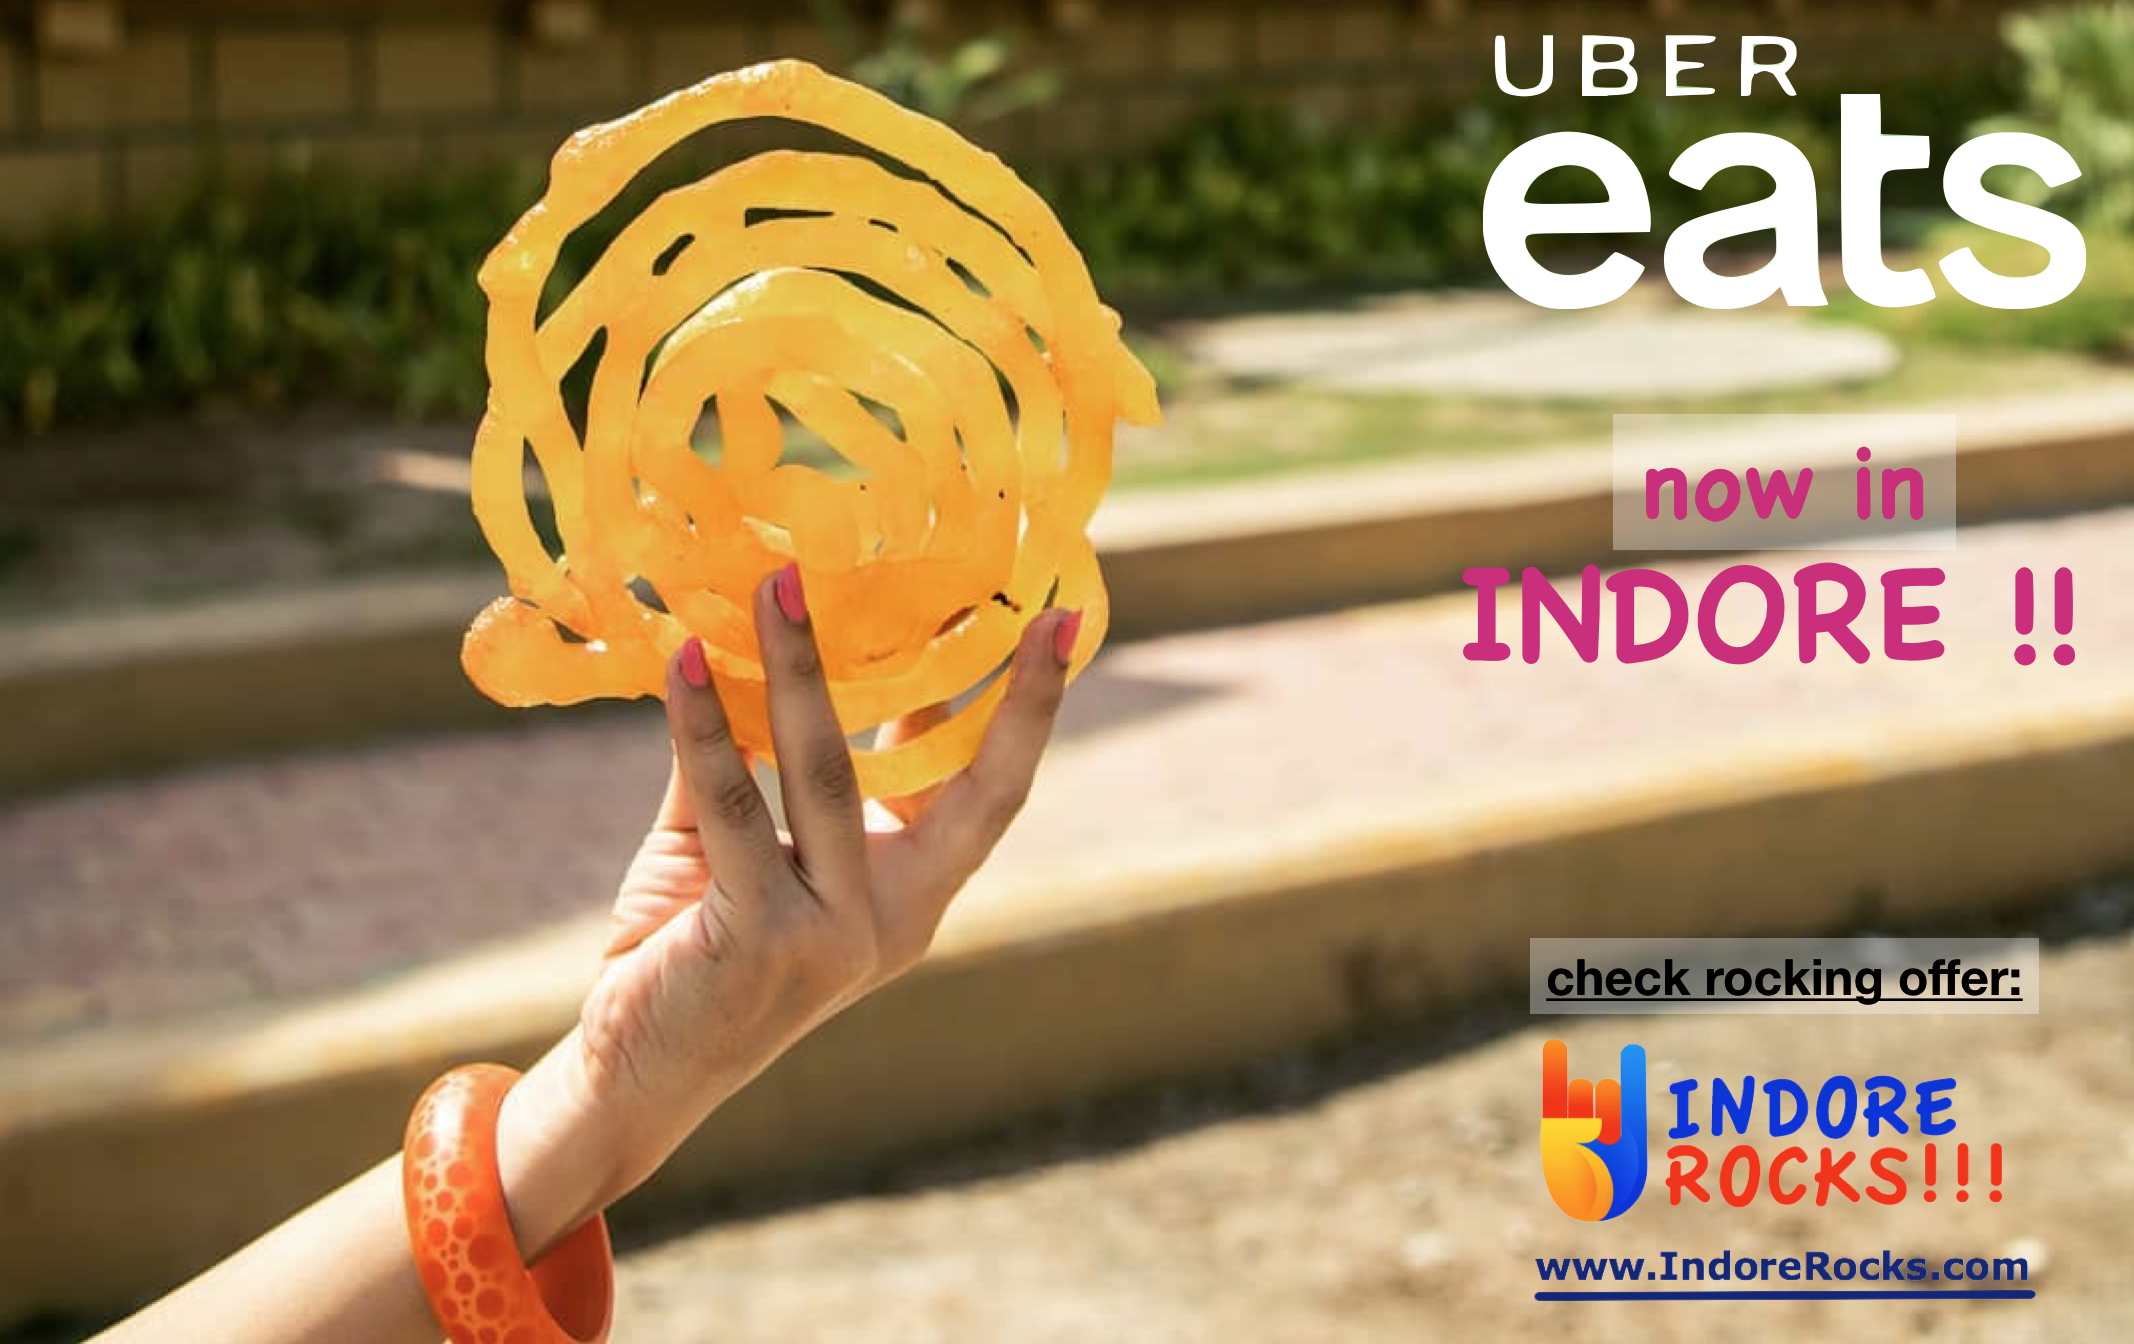 uber eat promo code indore